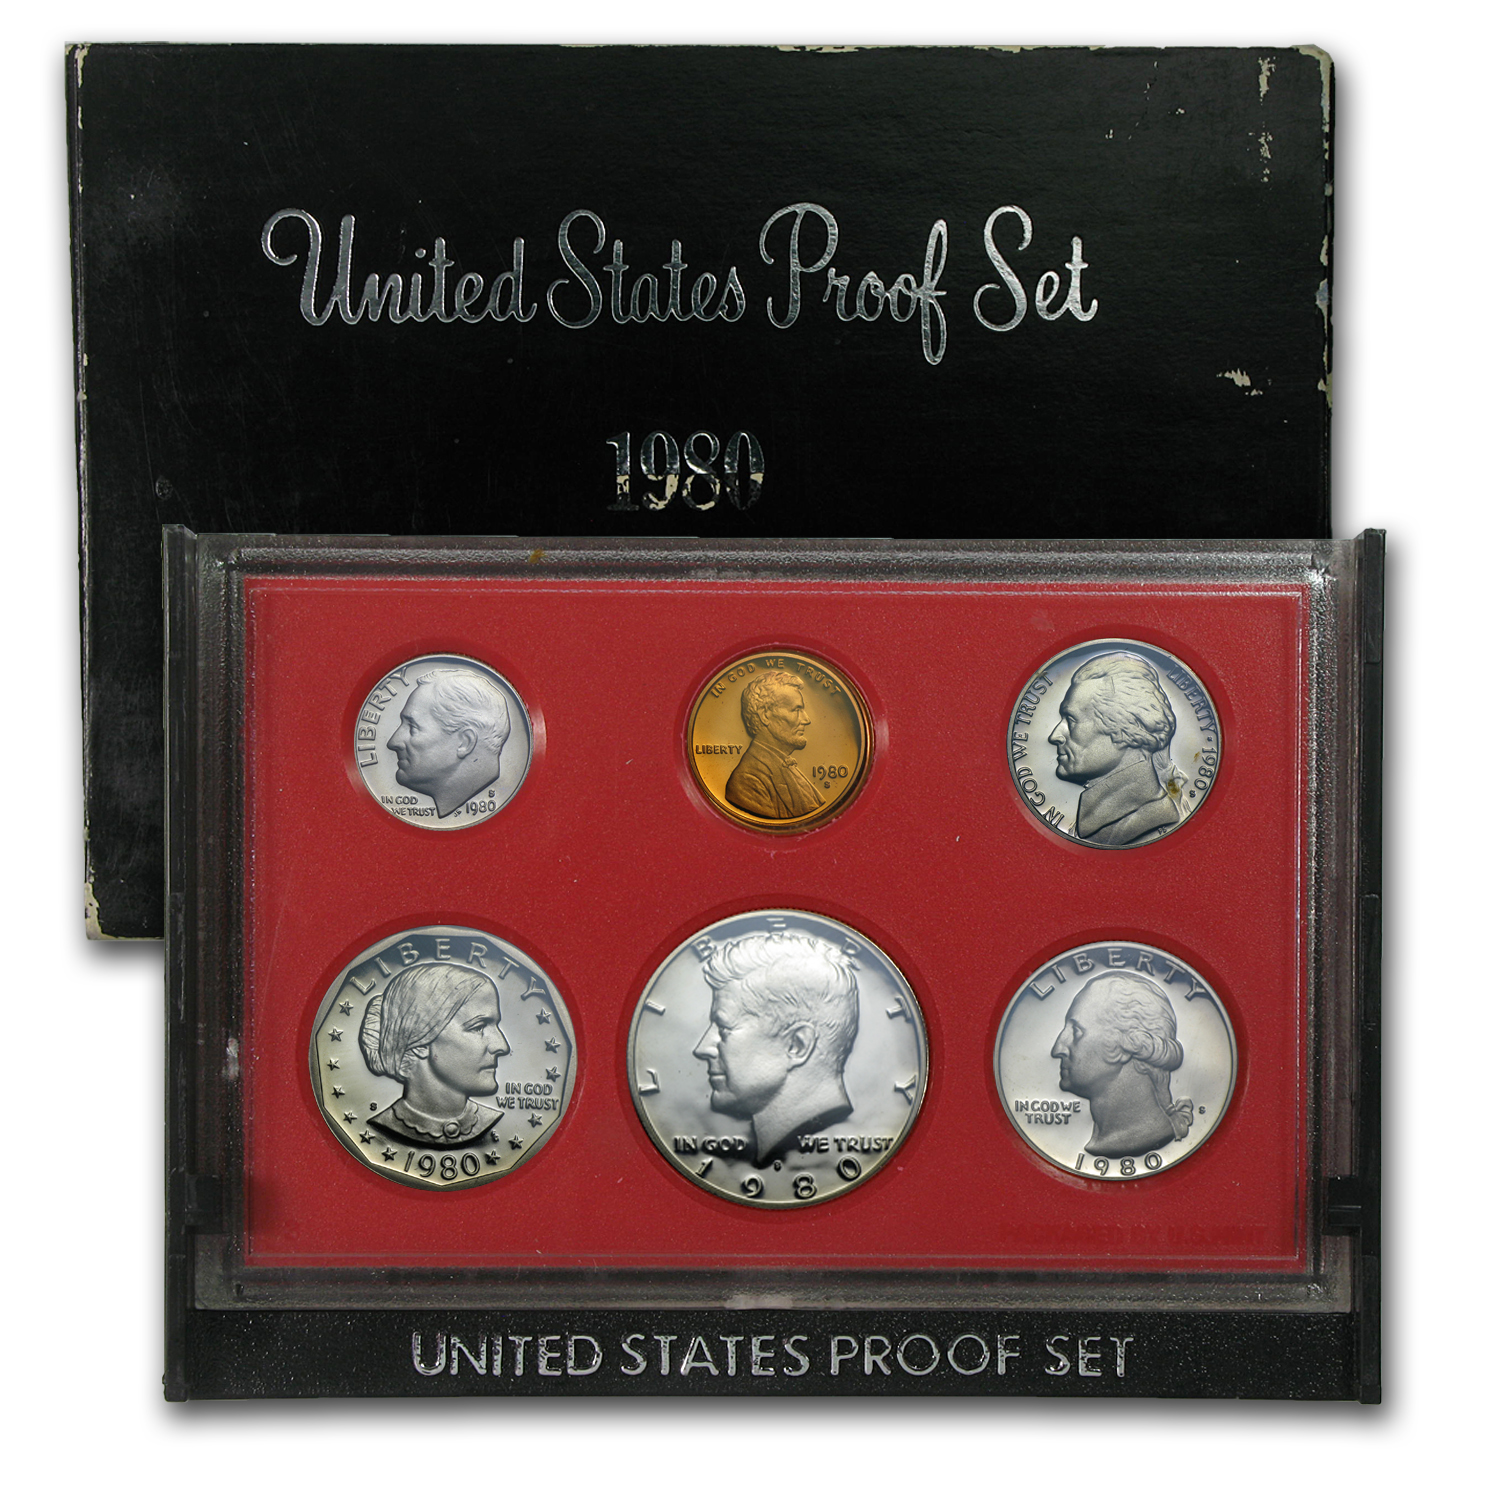 1980 U.S. Proof Set